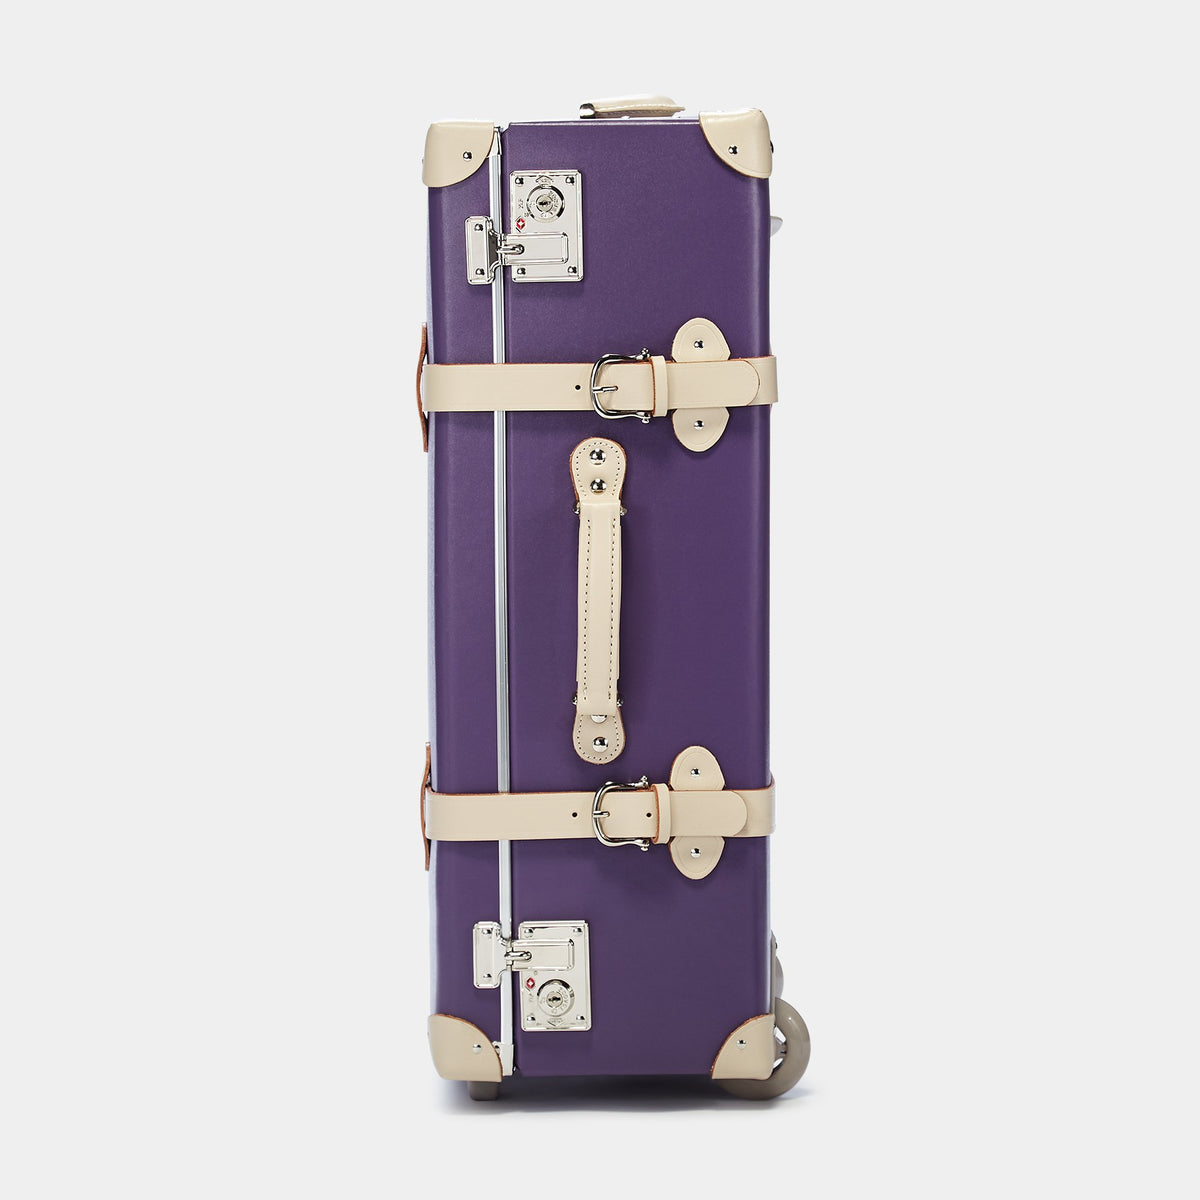 The Botanist Stowaway in Purple - Vintage-Inspired Suitcase - Exterior Side